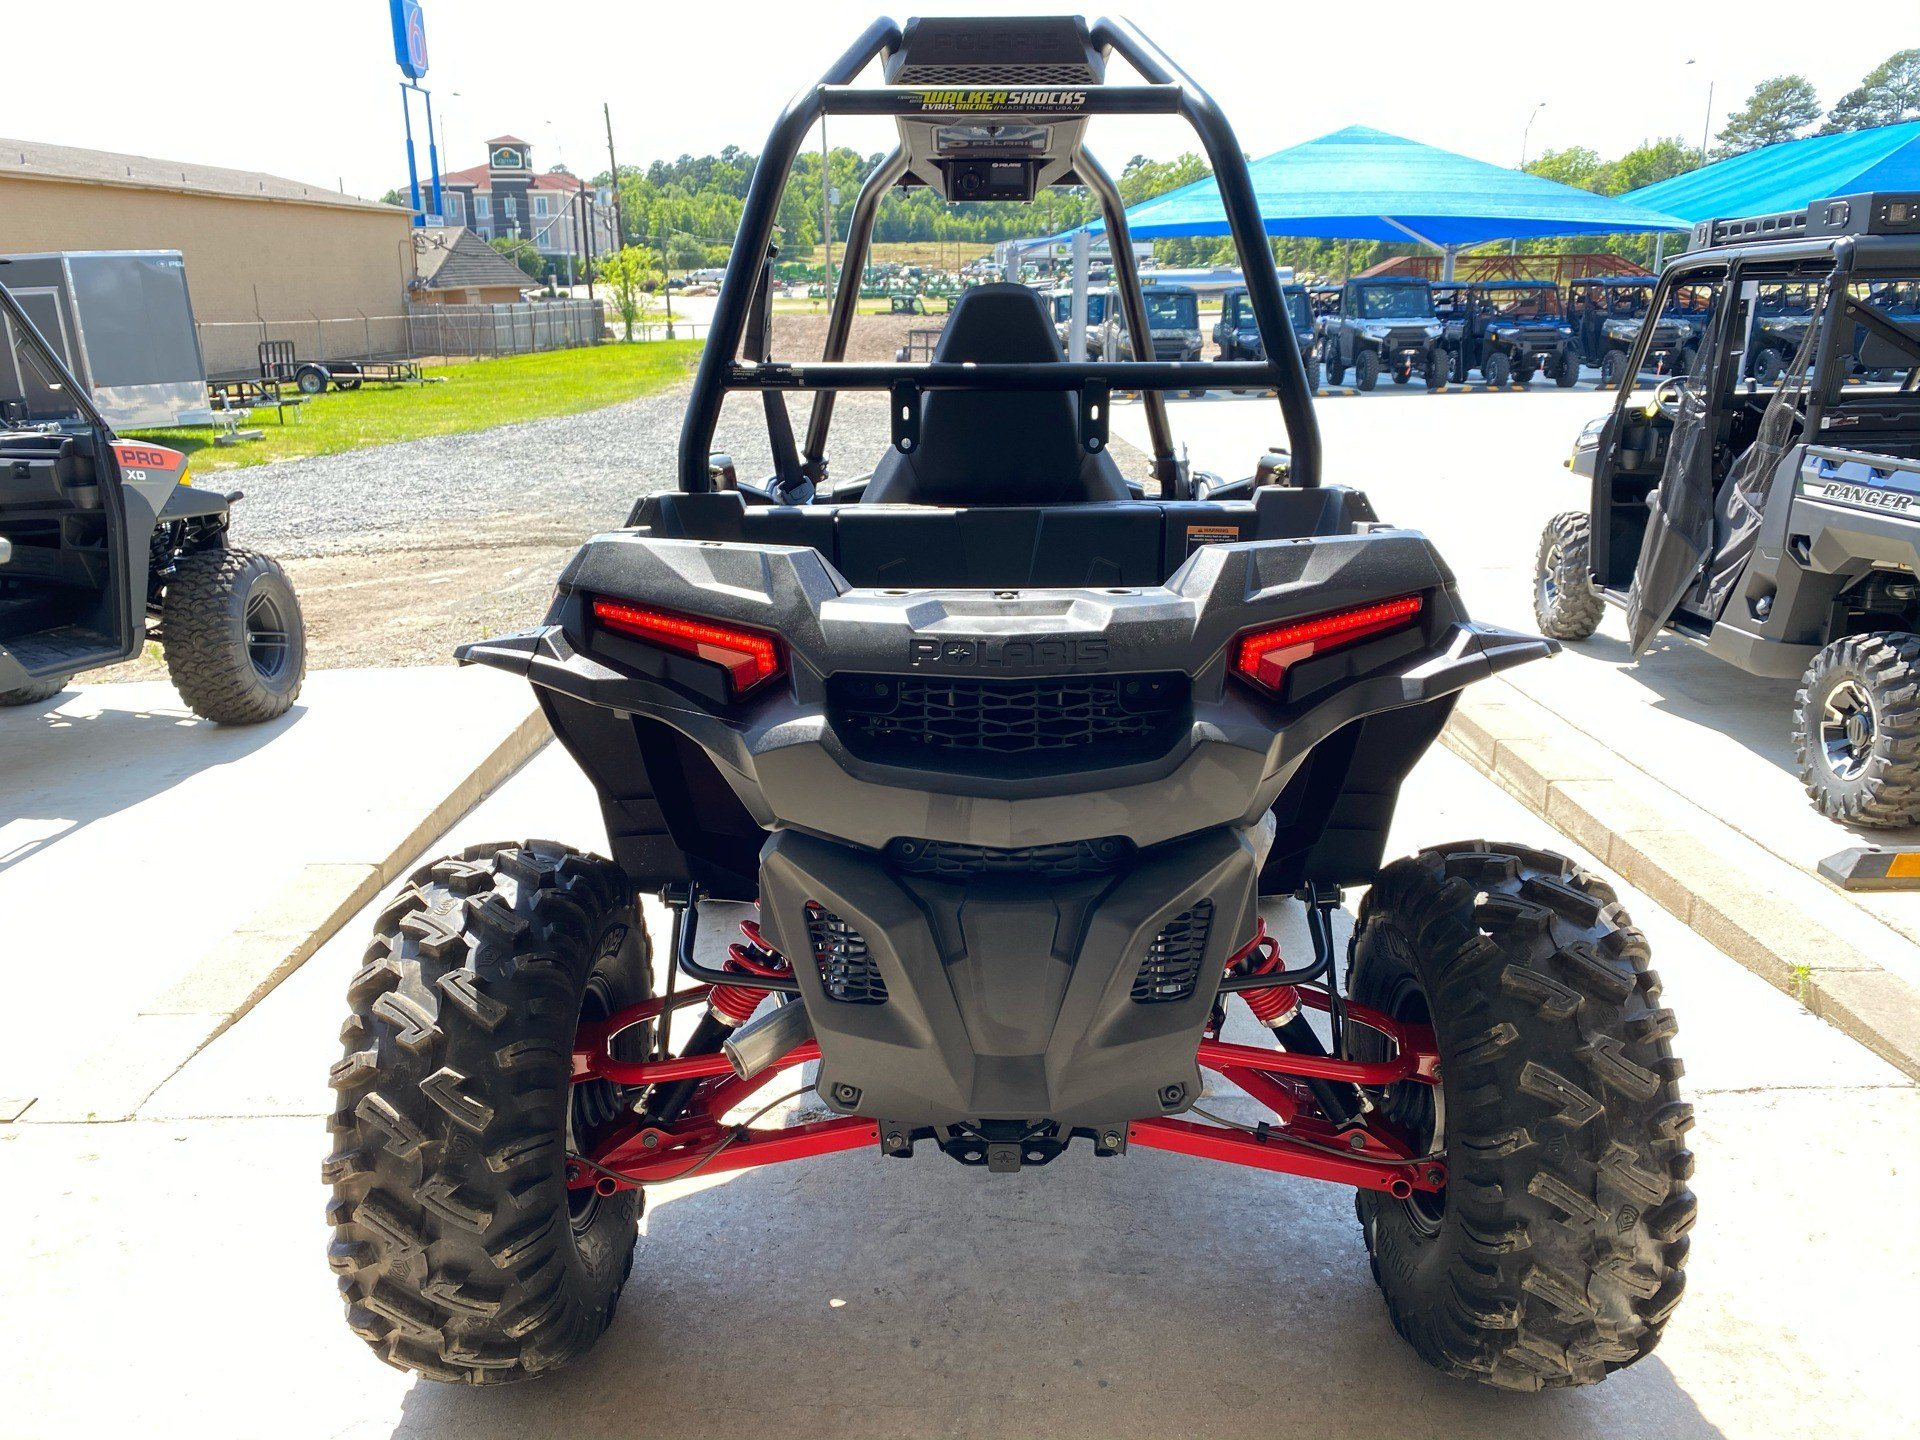 2019 Polaris Ace 900 XC in Marshall, Texas - Photo 8